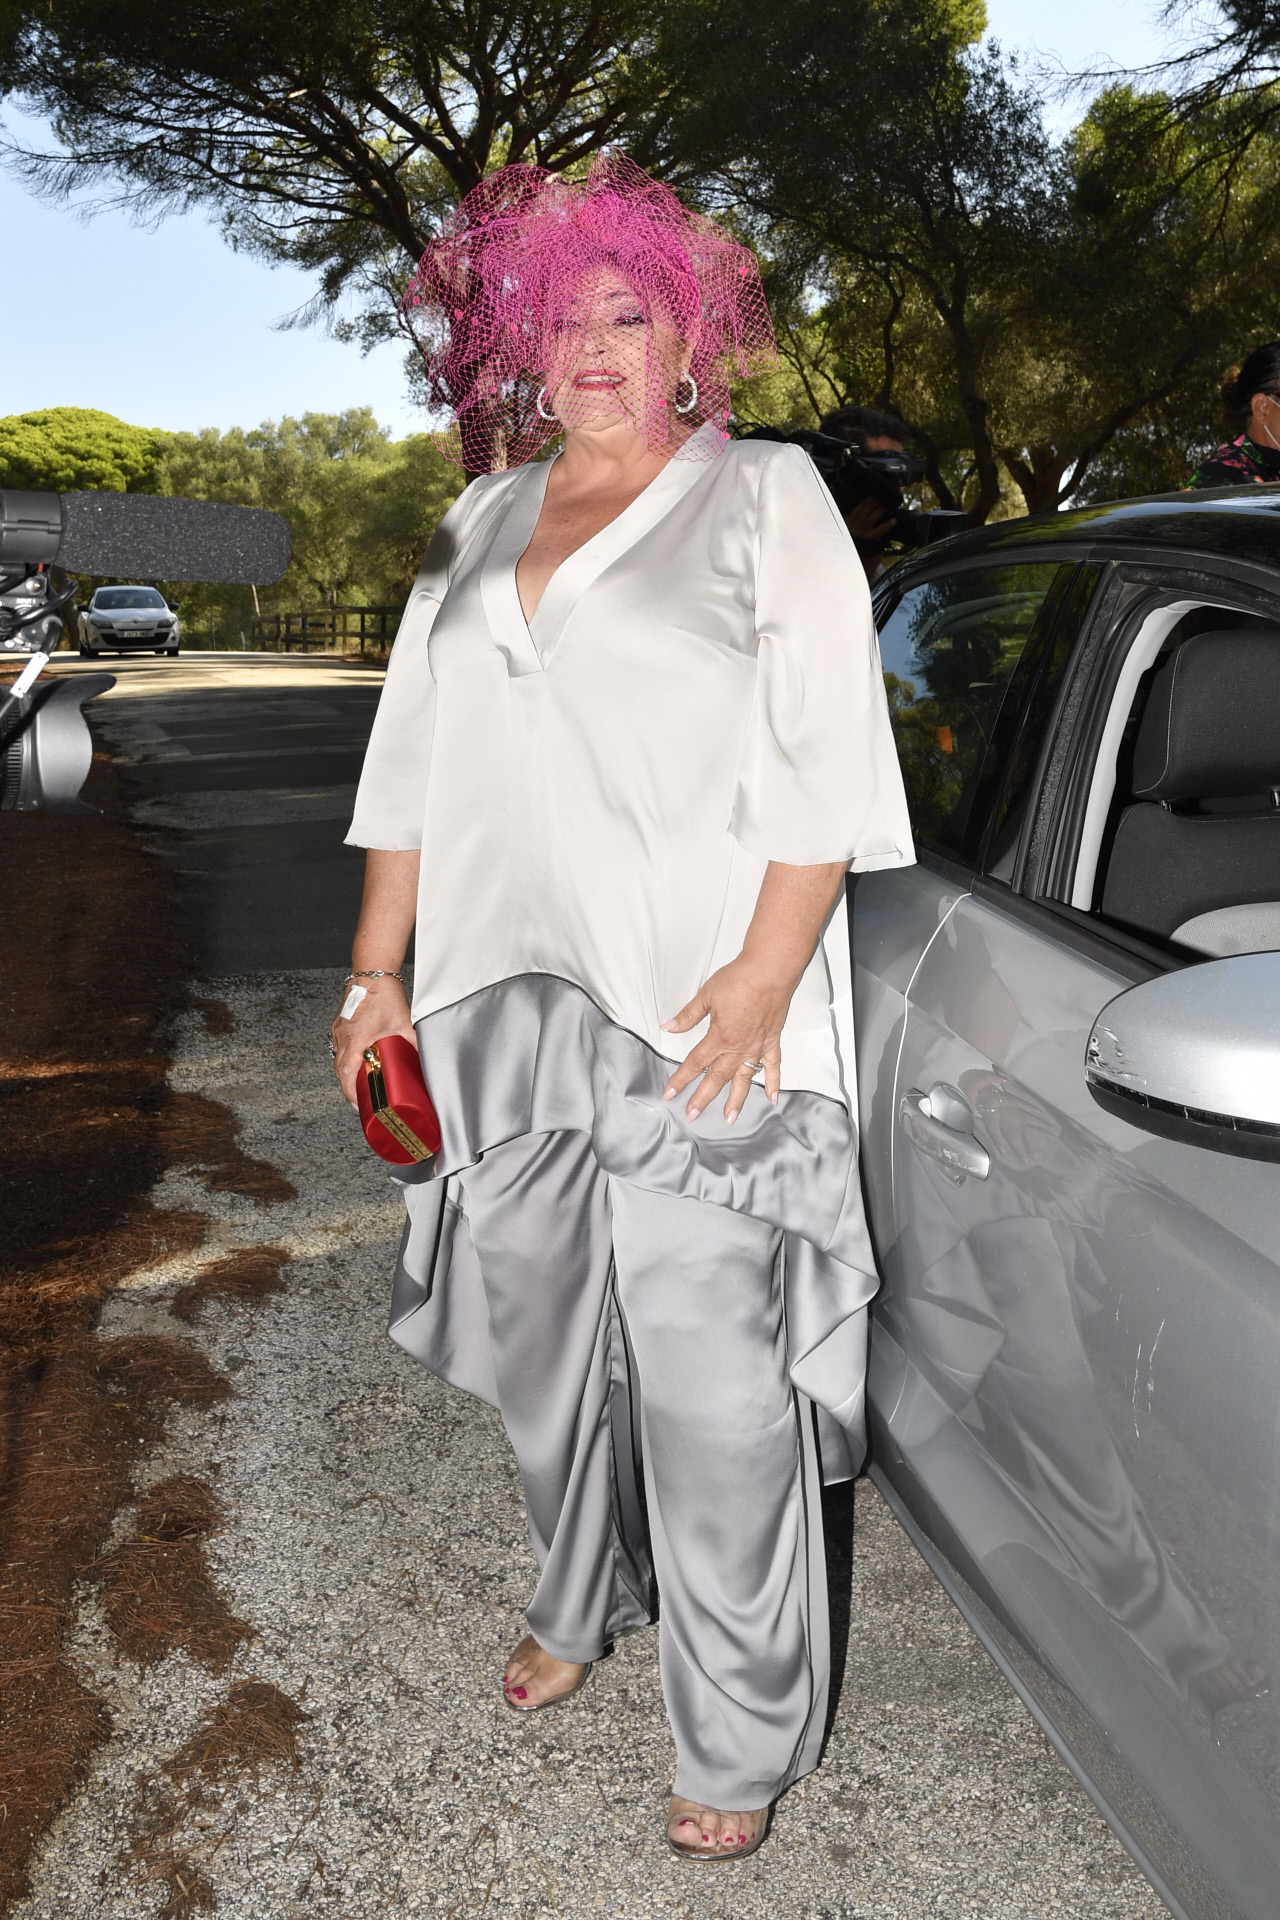 Charo Reina at the wedding of Elena Furiase and Gonzalo Sierra